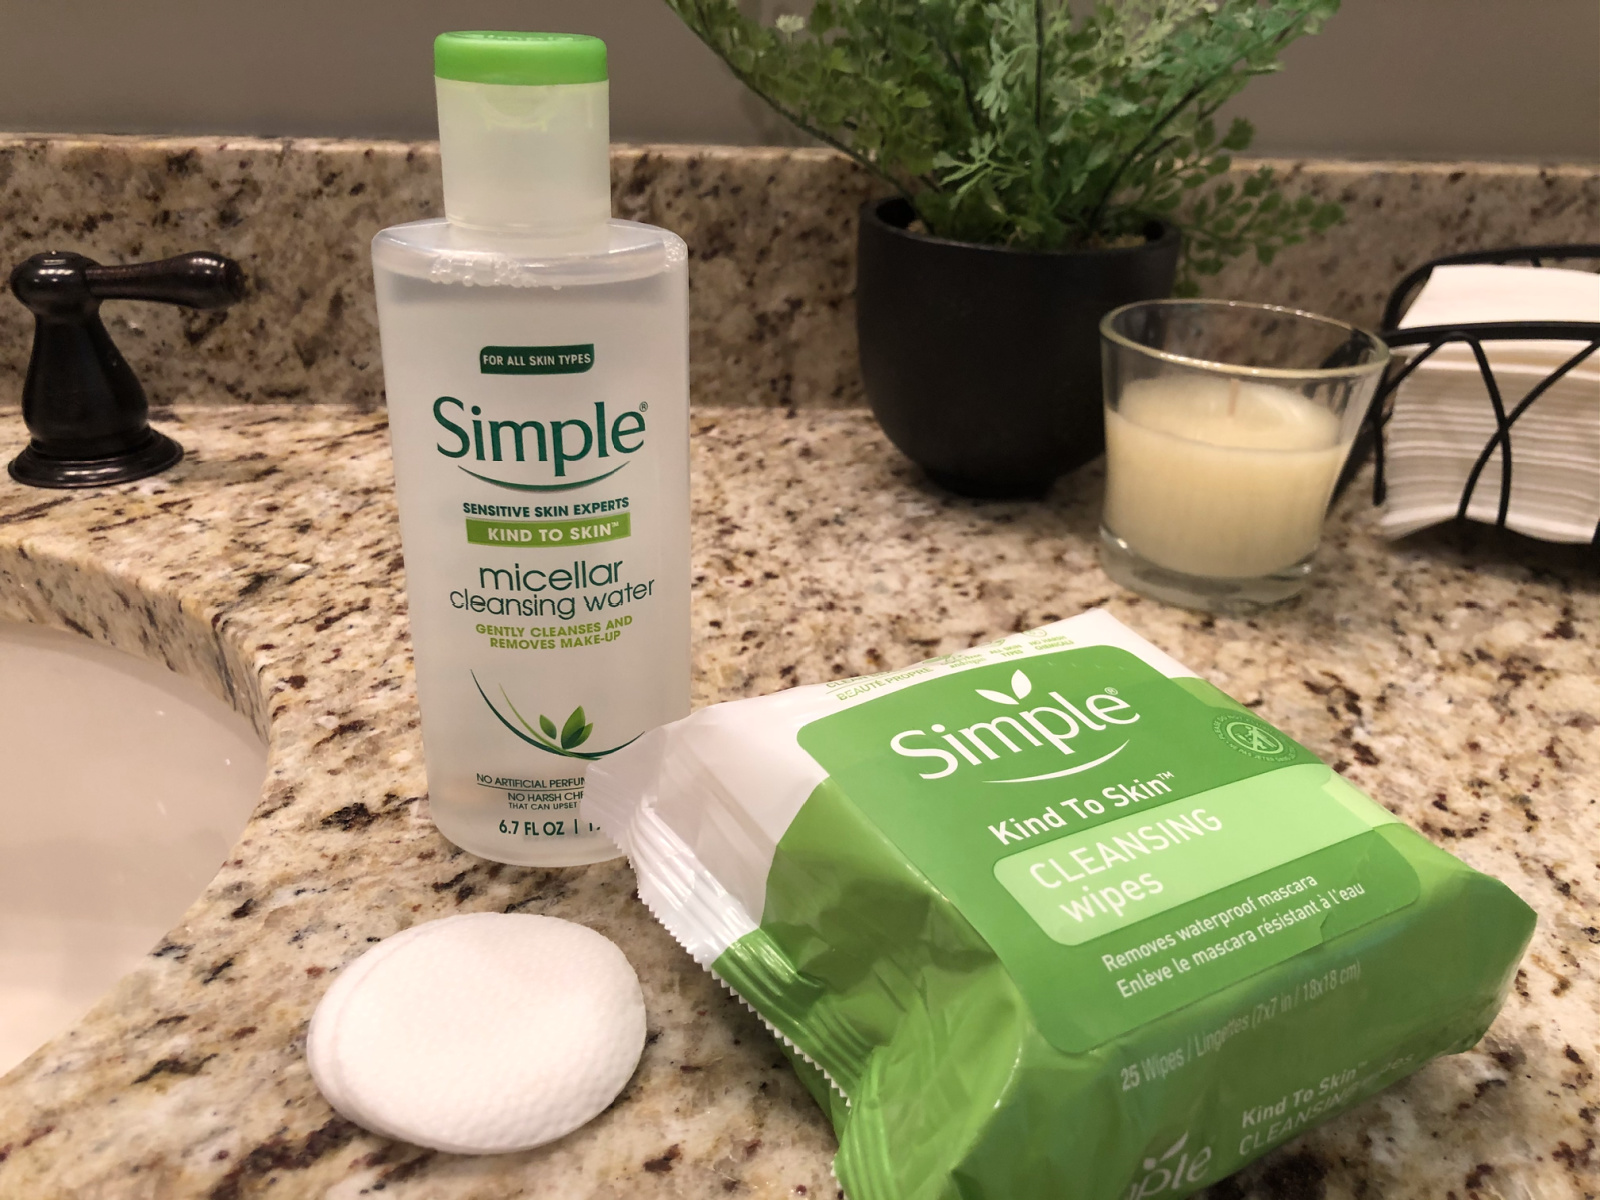 Great Savings On The Unilever Personal Care Products That You Use - Look For Lots Of Deals At Publix on I Heart Publix